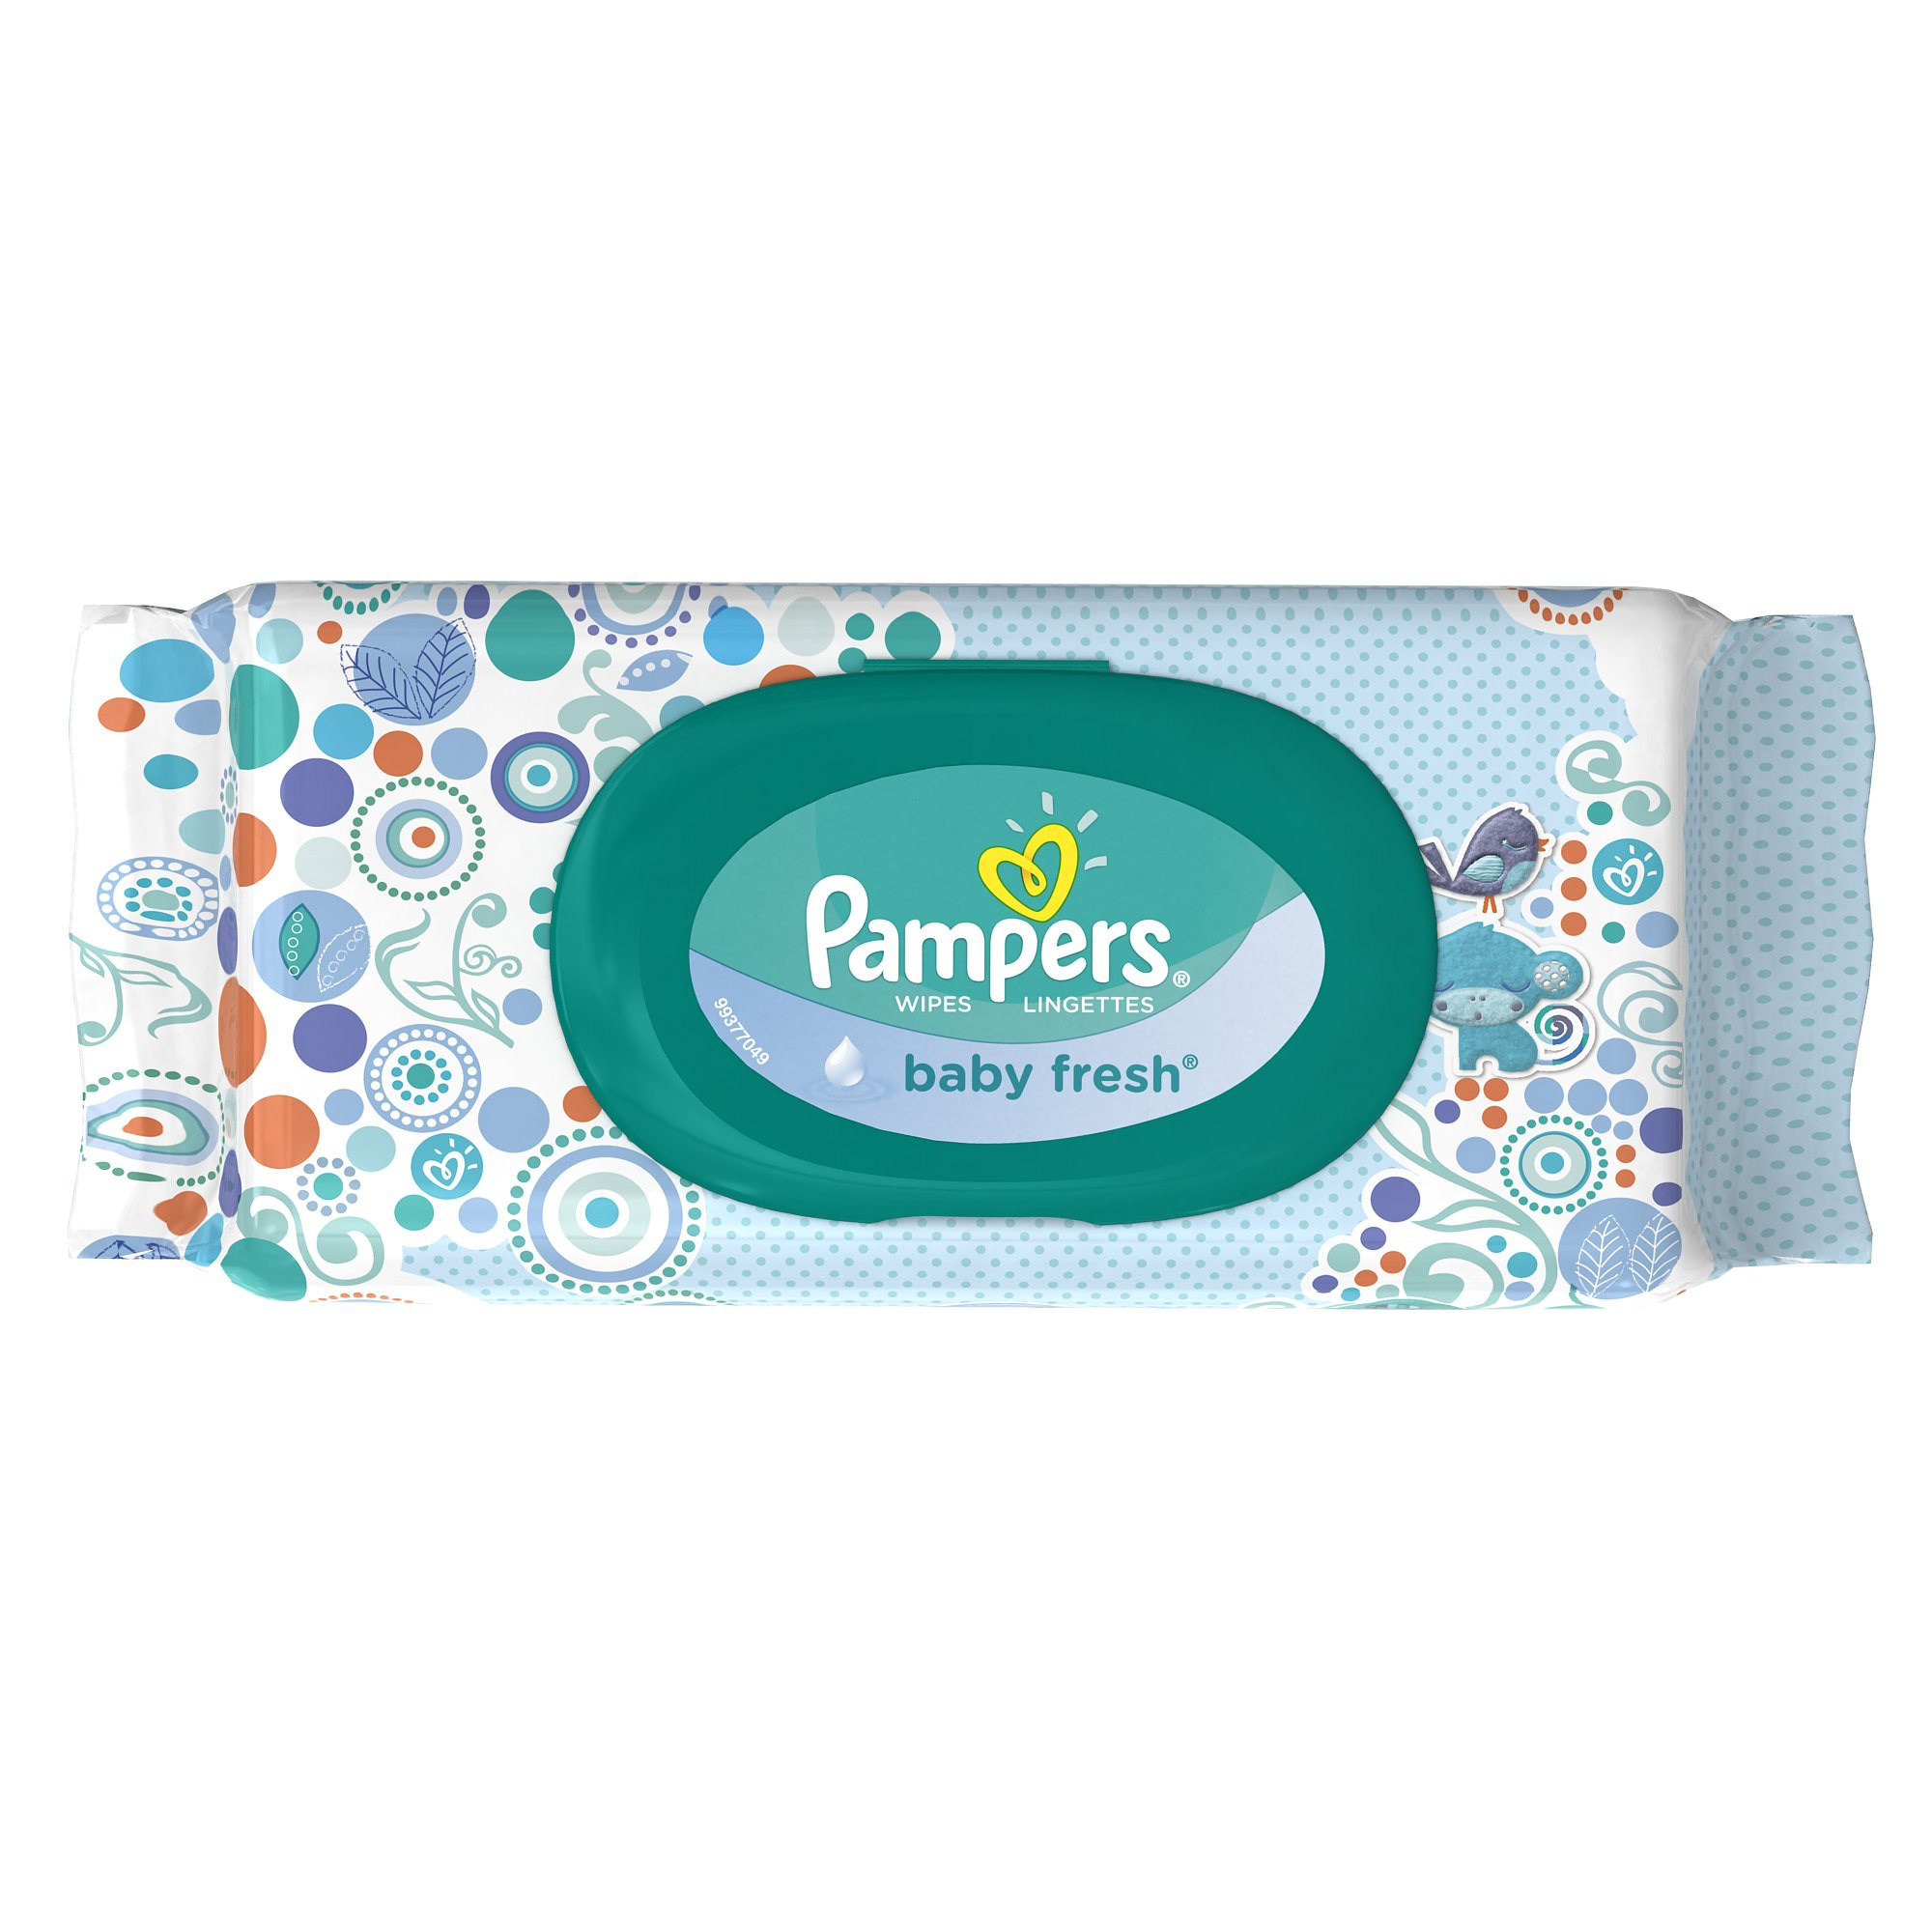 Pampers Baby Fresh Wipes Travel Pack 64 Count by Pampers (Image #1)